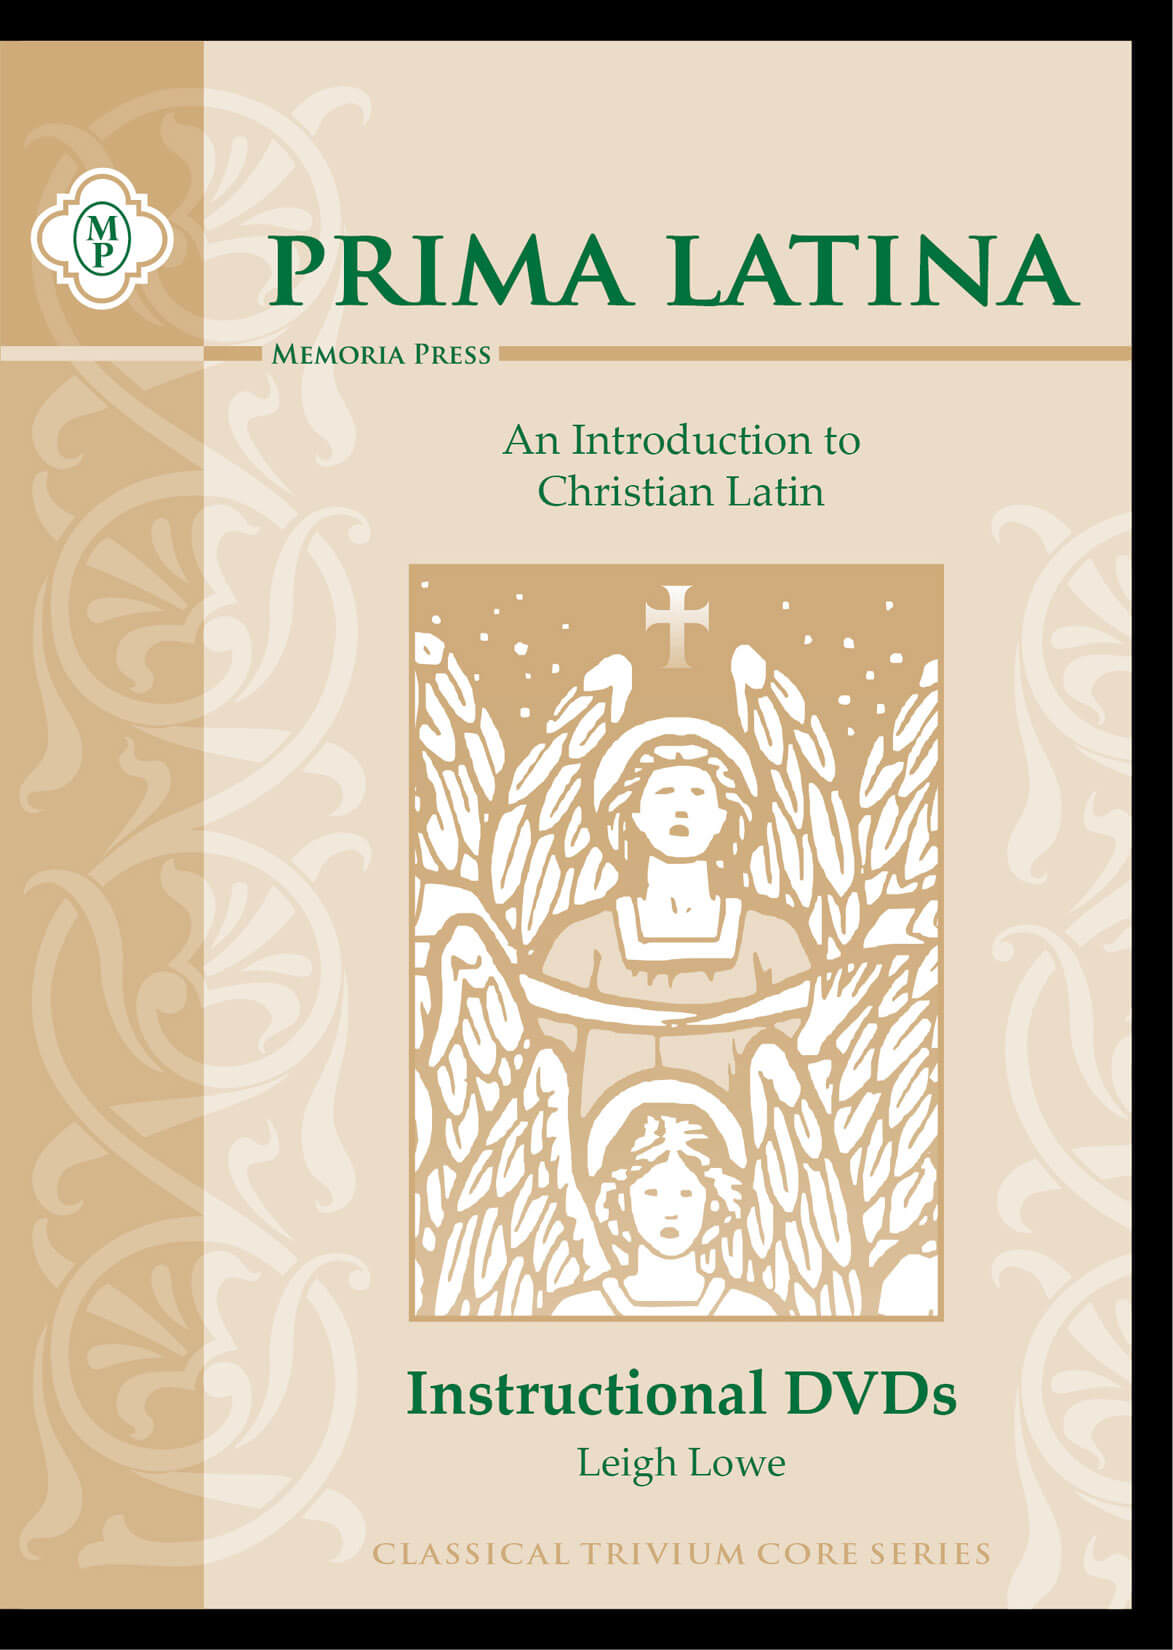 Prima Latina Complete Set | Memoria Press - Classical ...